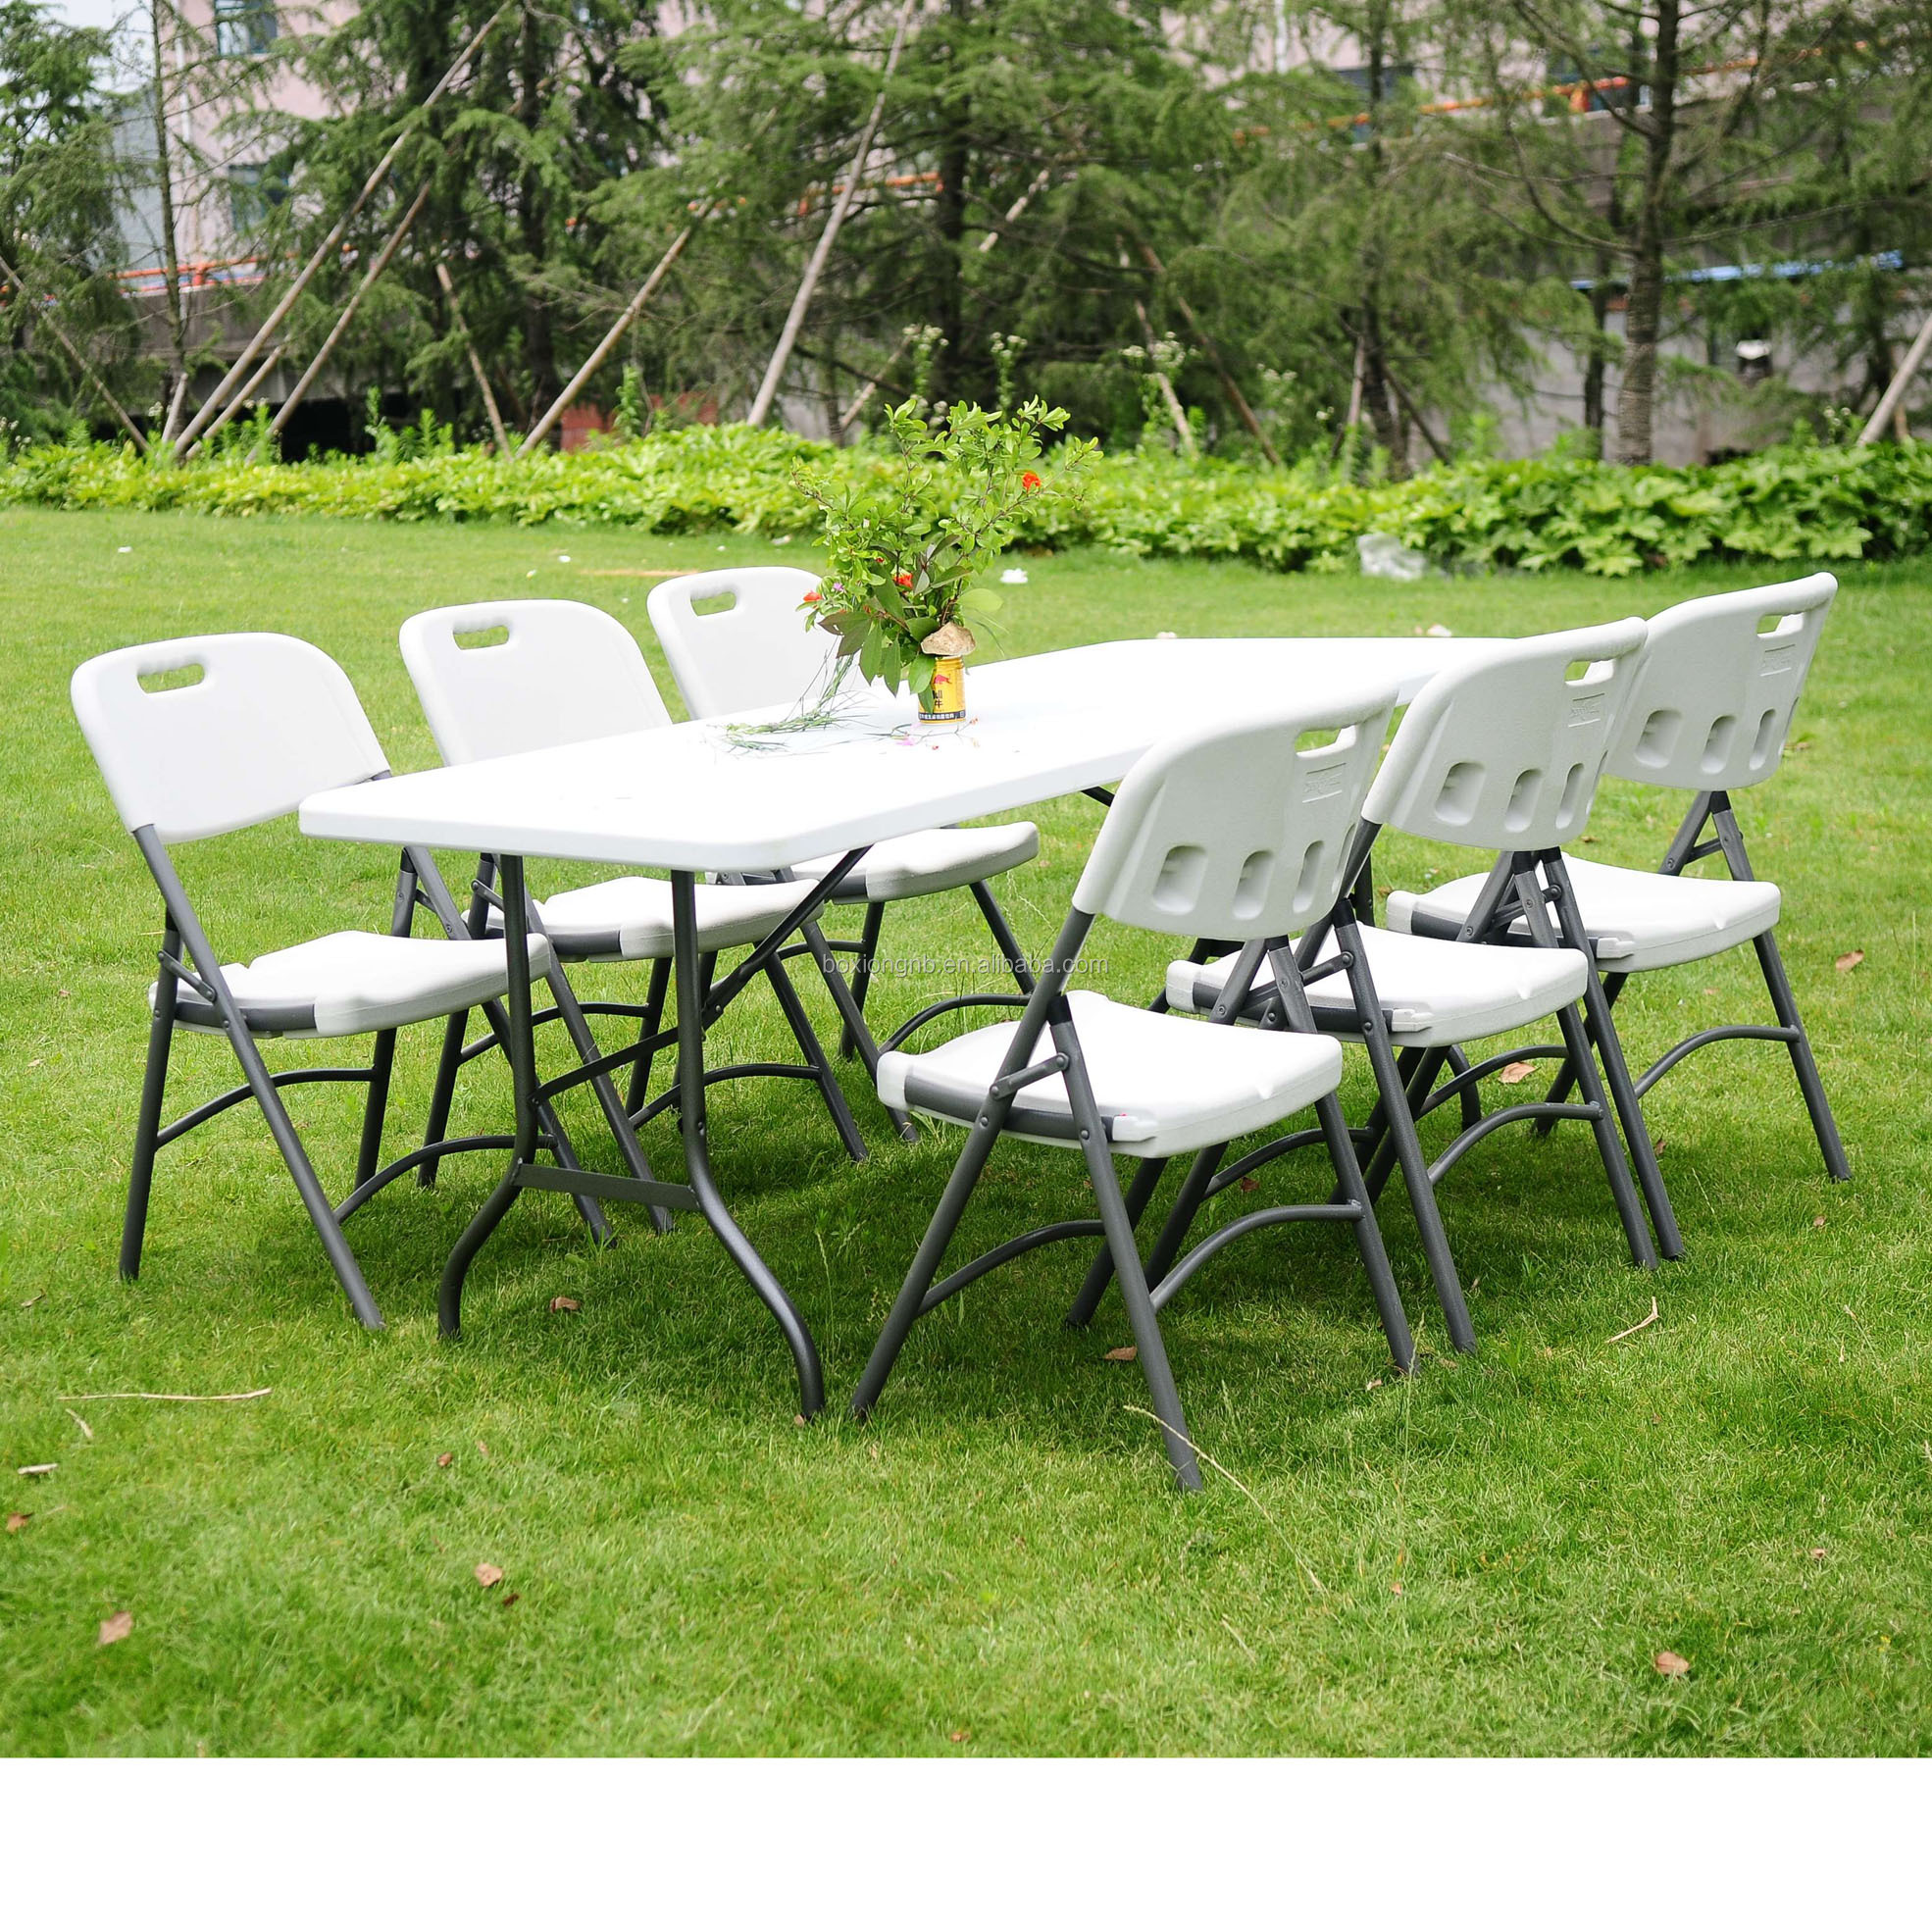 - 6-foot Folding Table With Lock - Buy Folding Table With Wheel&lock